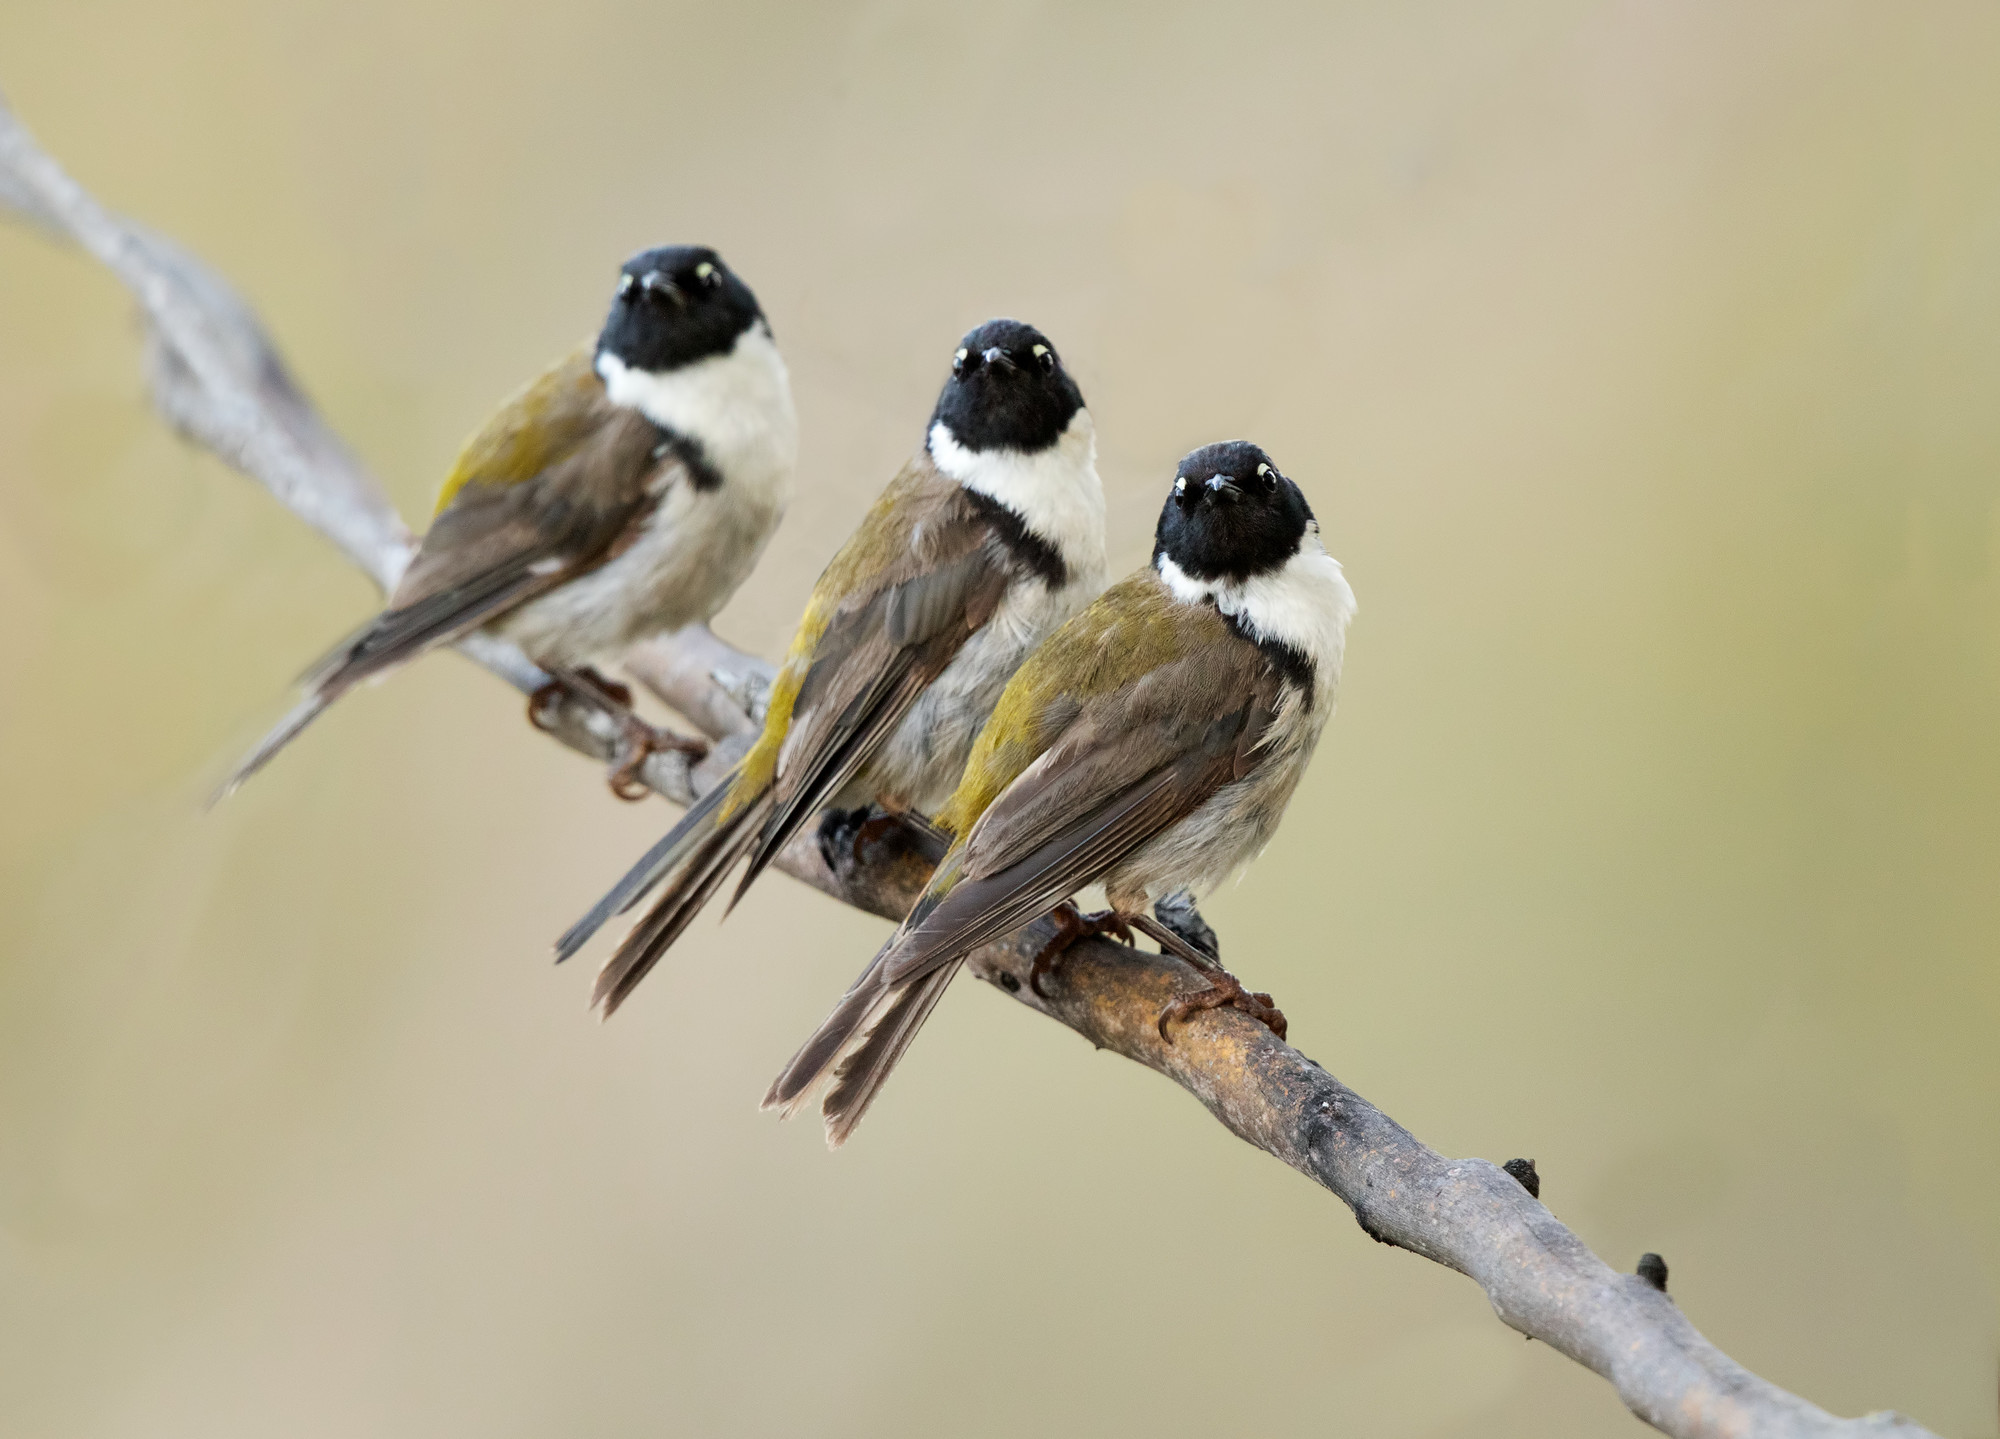 Three endemic black-headed honeyeaters (Melithreptus affinus), Bruny Island, perched on branch,